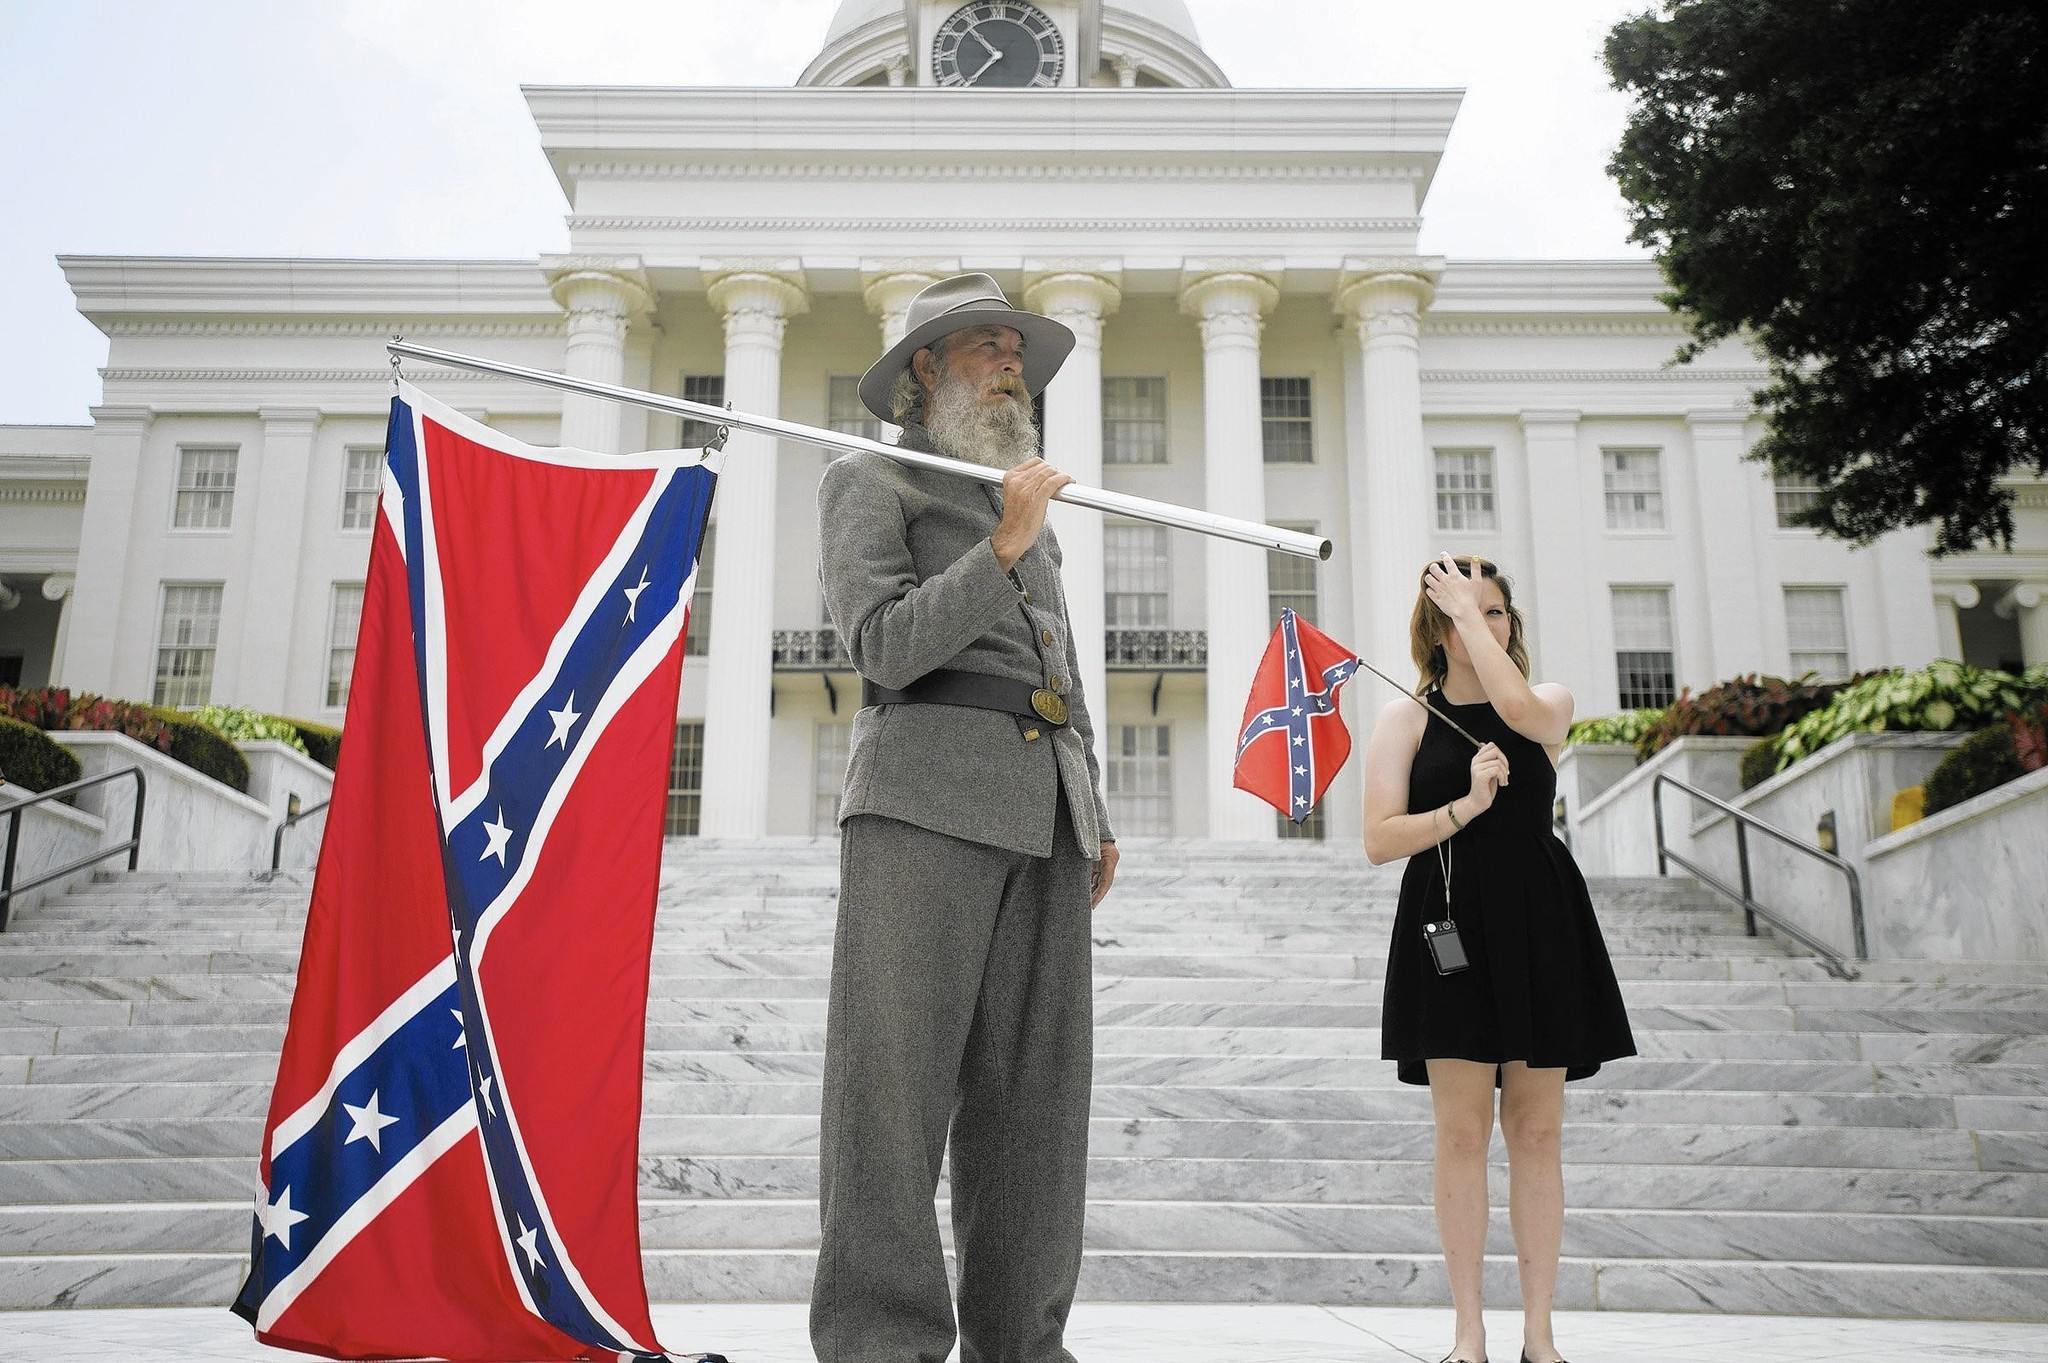 Why do people believe myths about the Confederacy? Because our textbooks and monuments are wrong